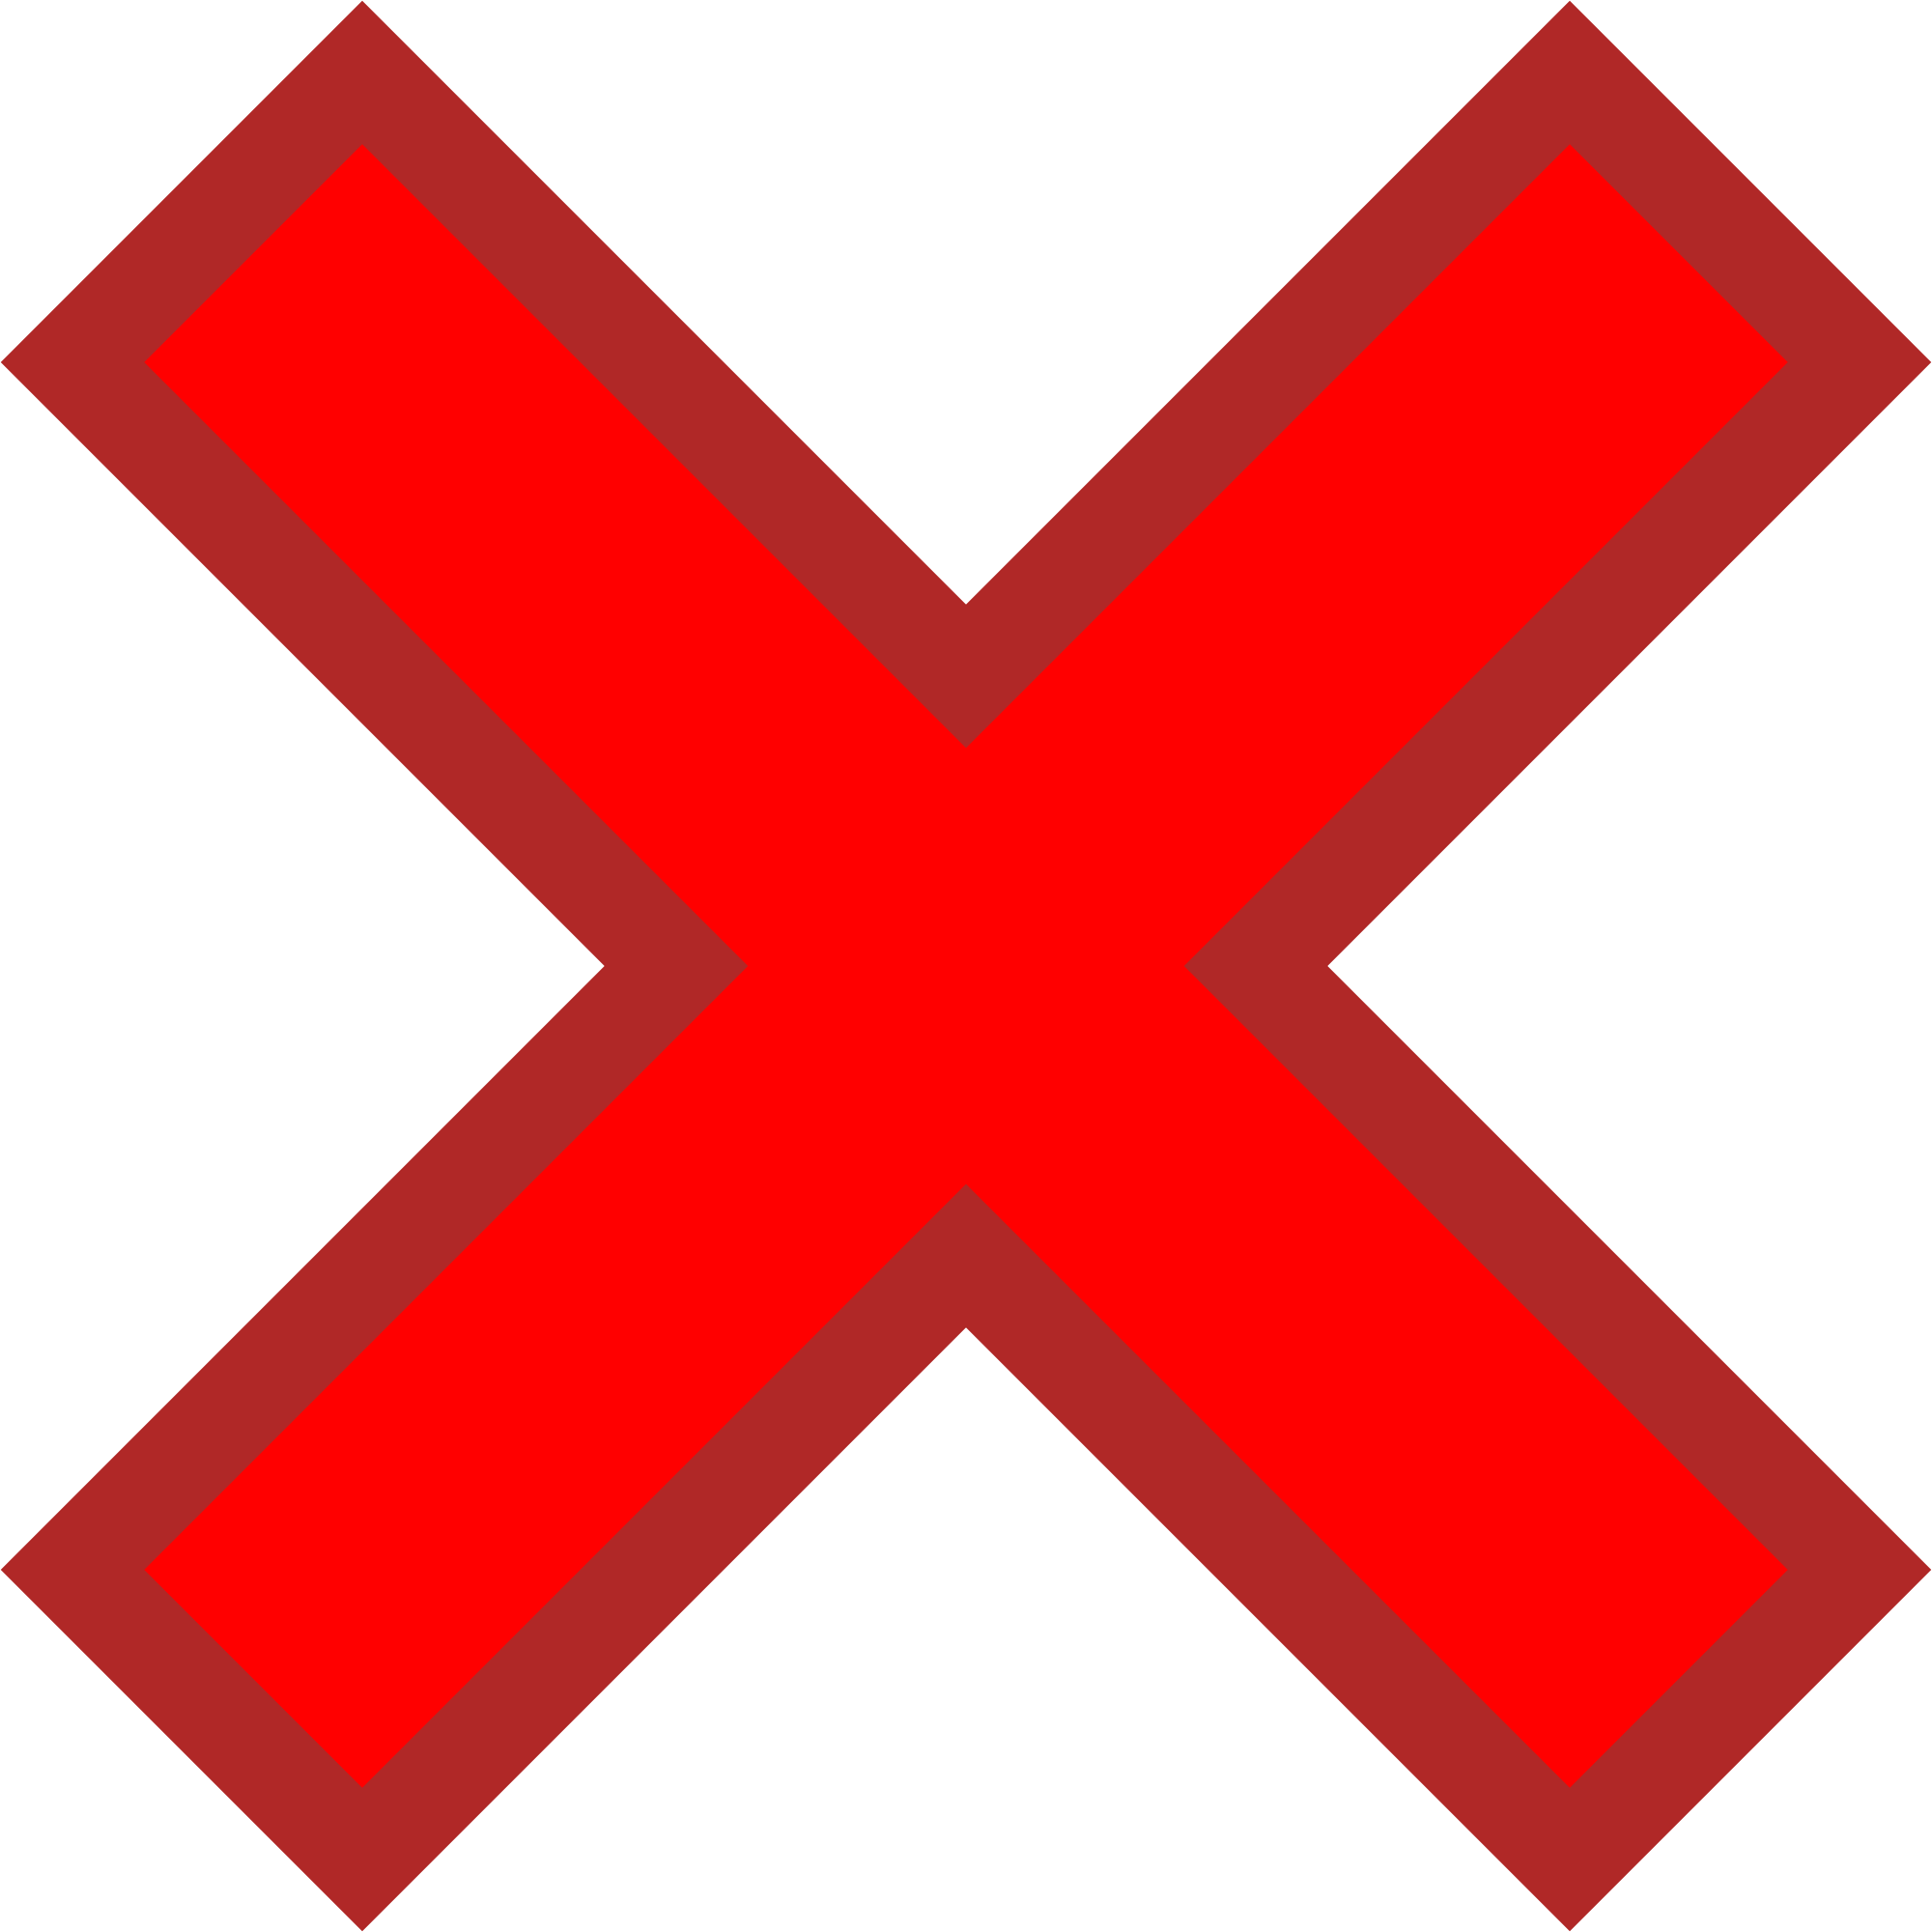 Red X Image.png